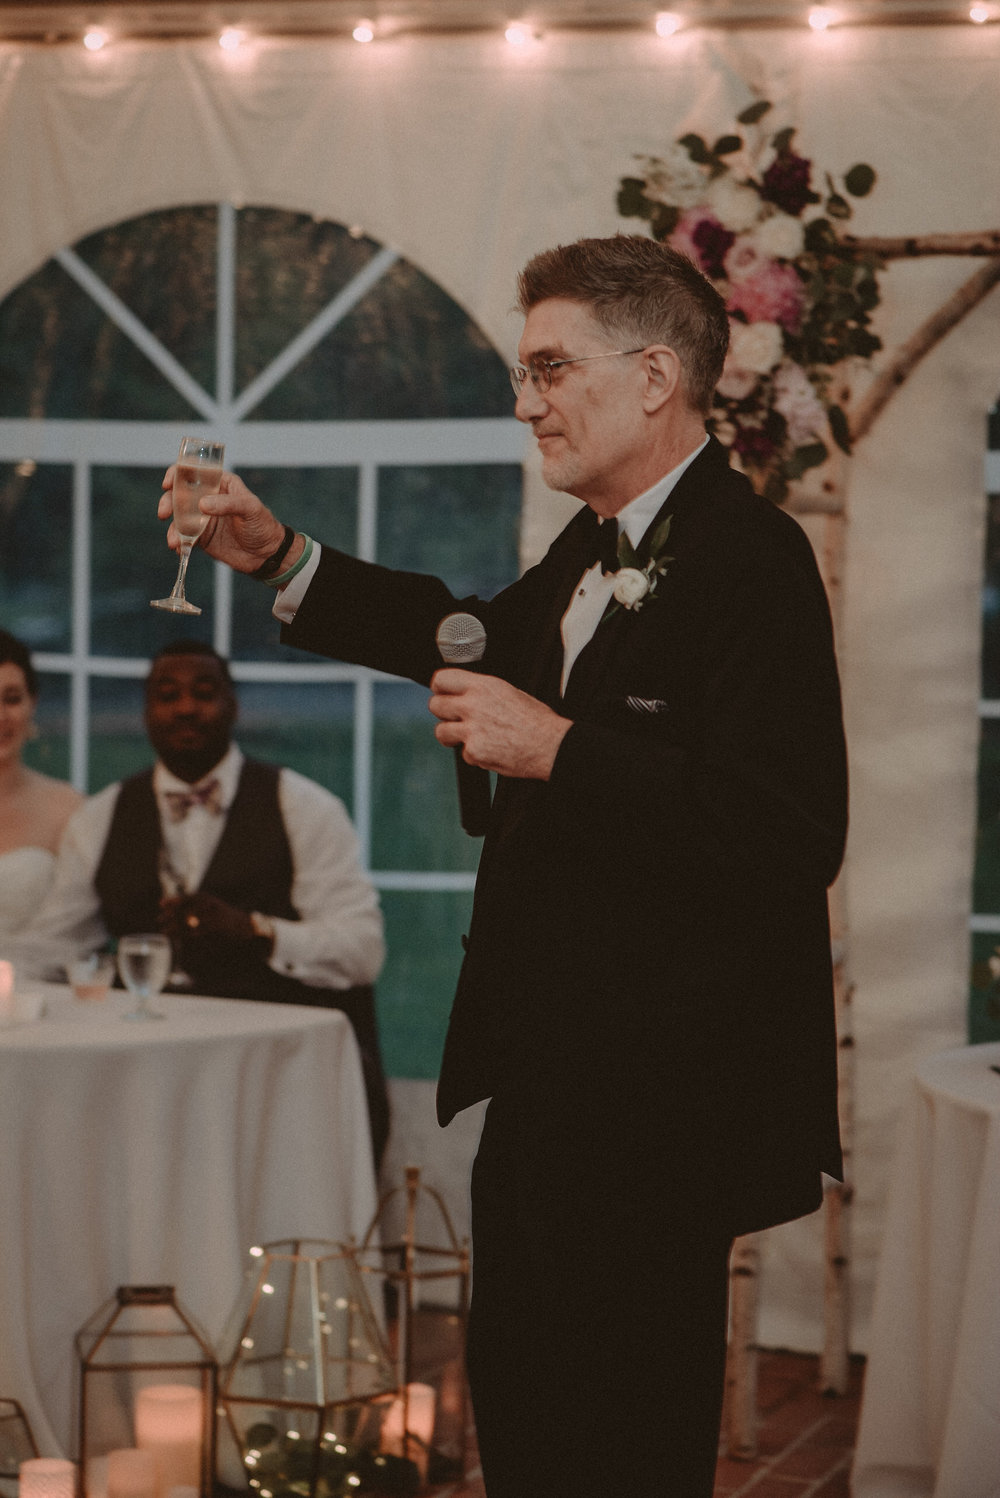 Father making speech at wedding